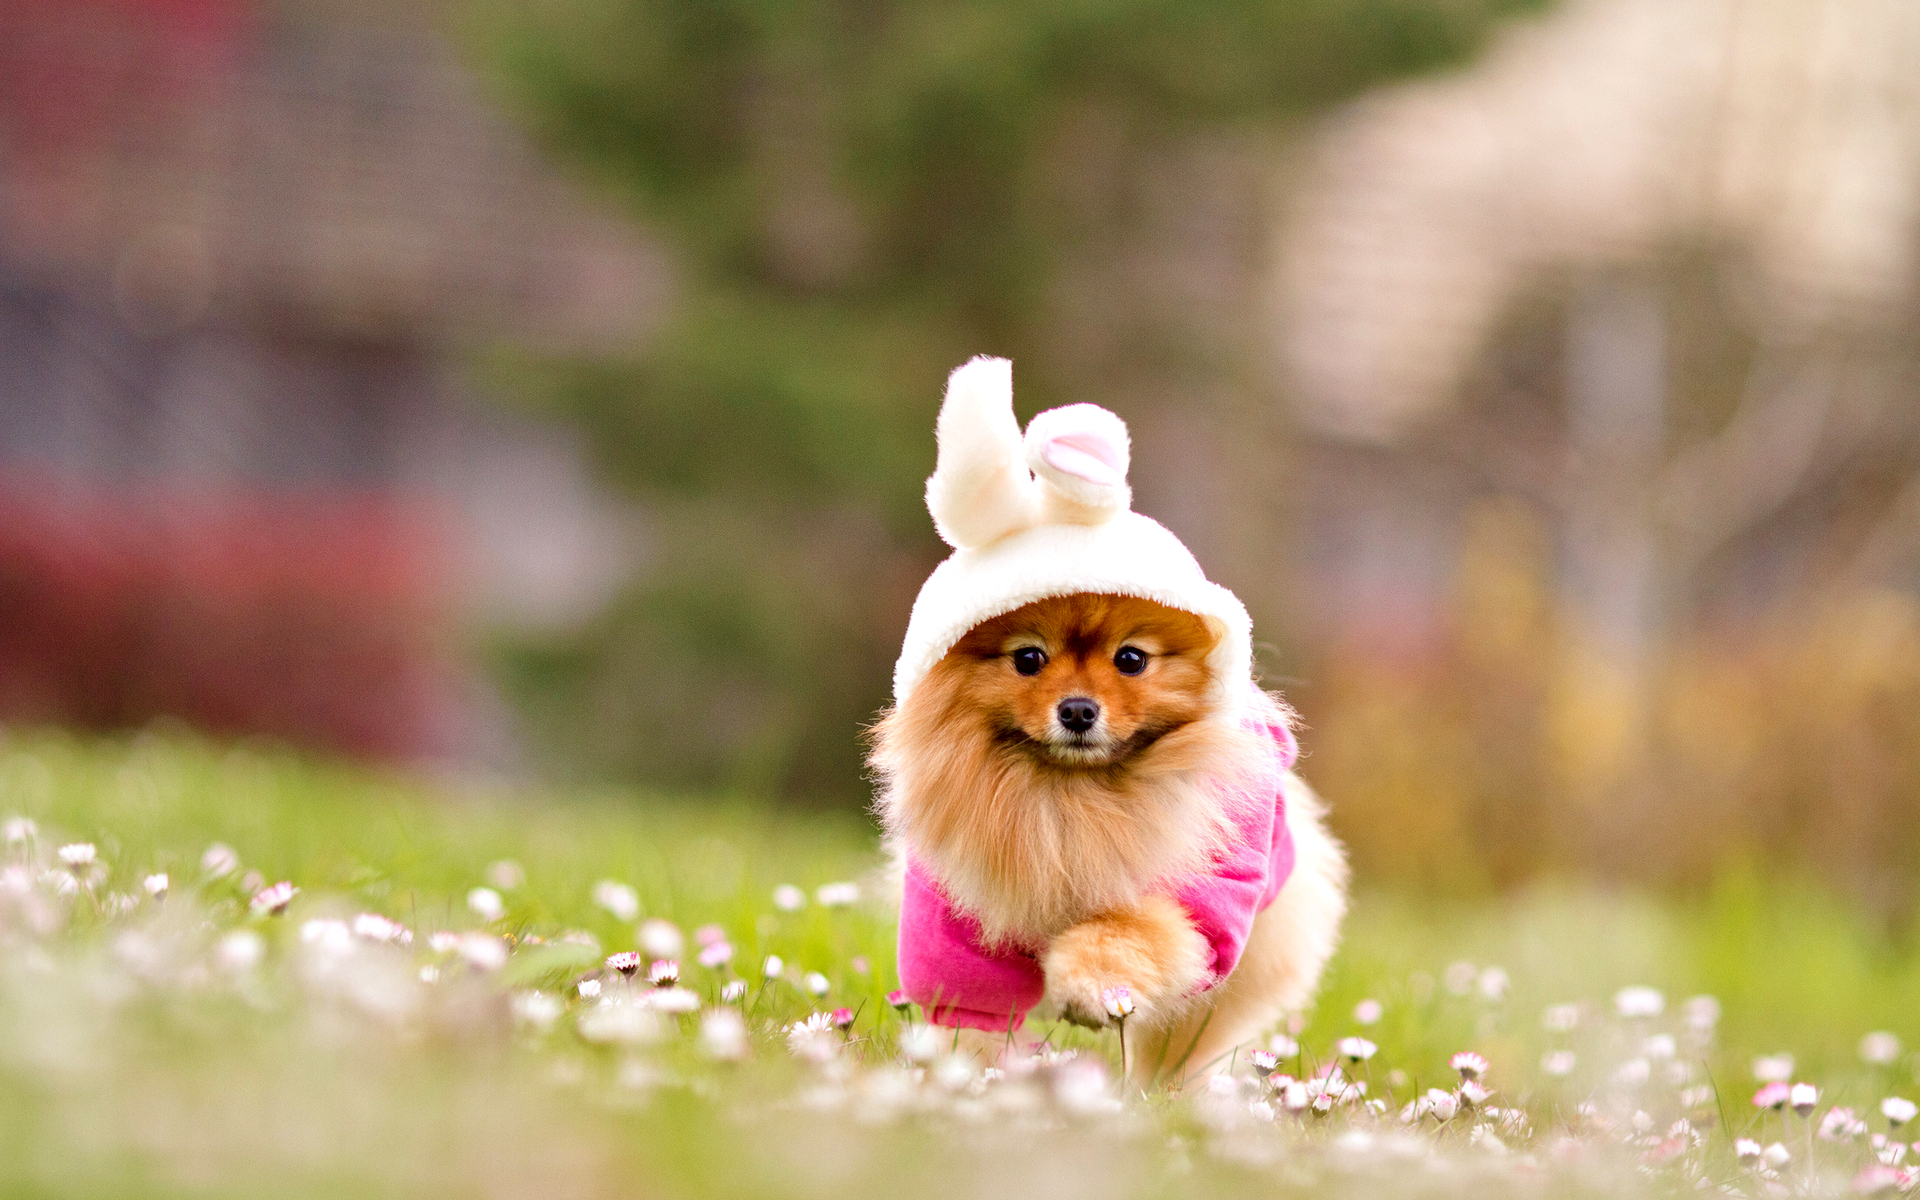 adorable dog wallpapers 1920x1200 1336266